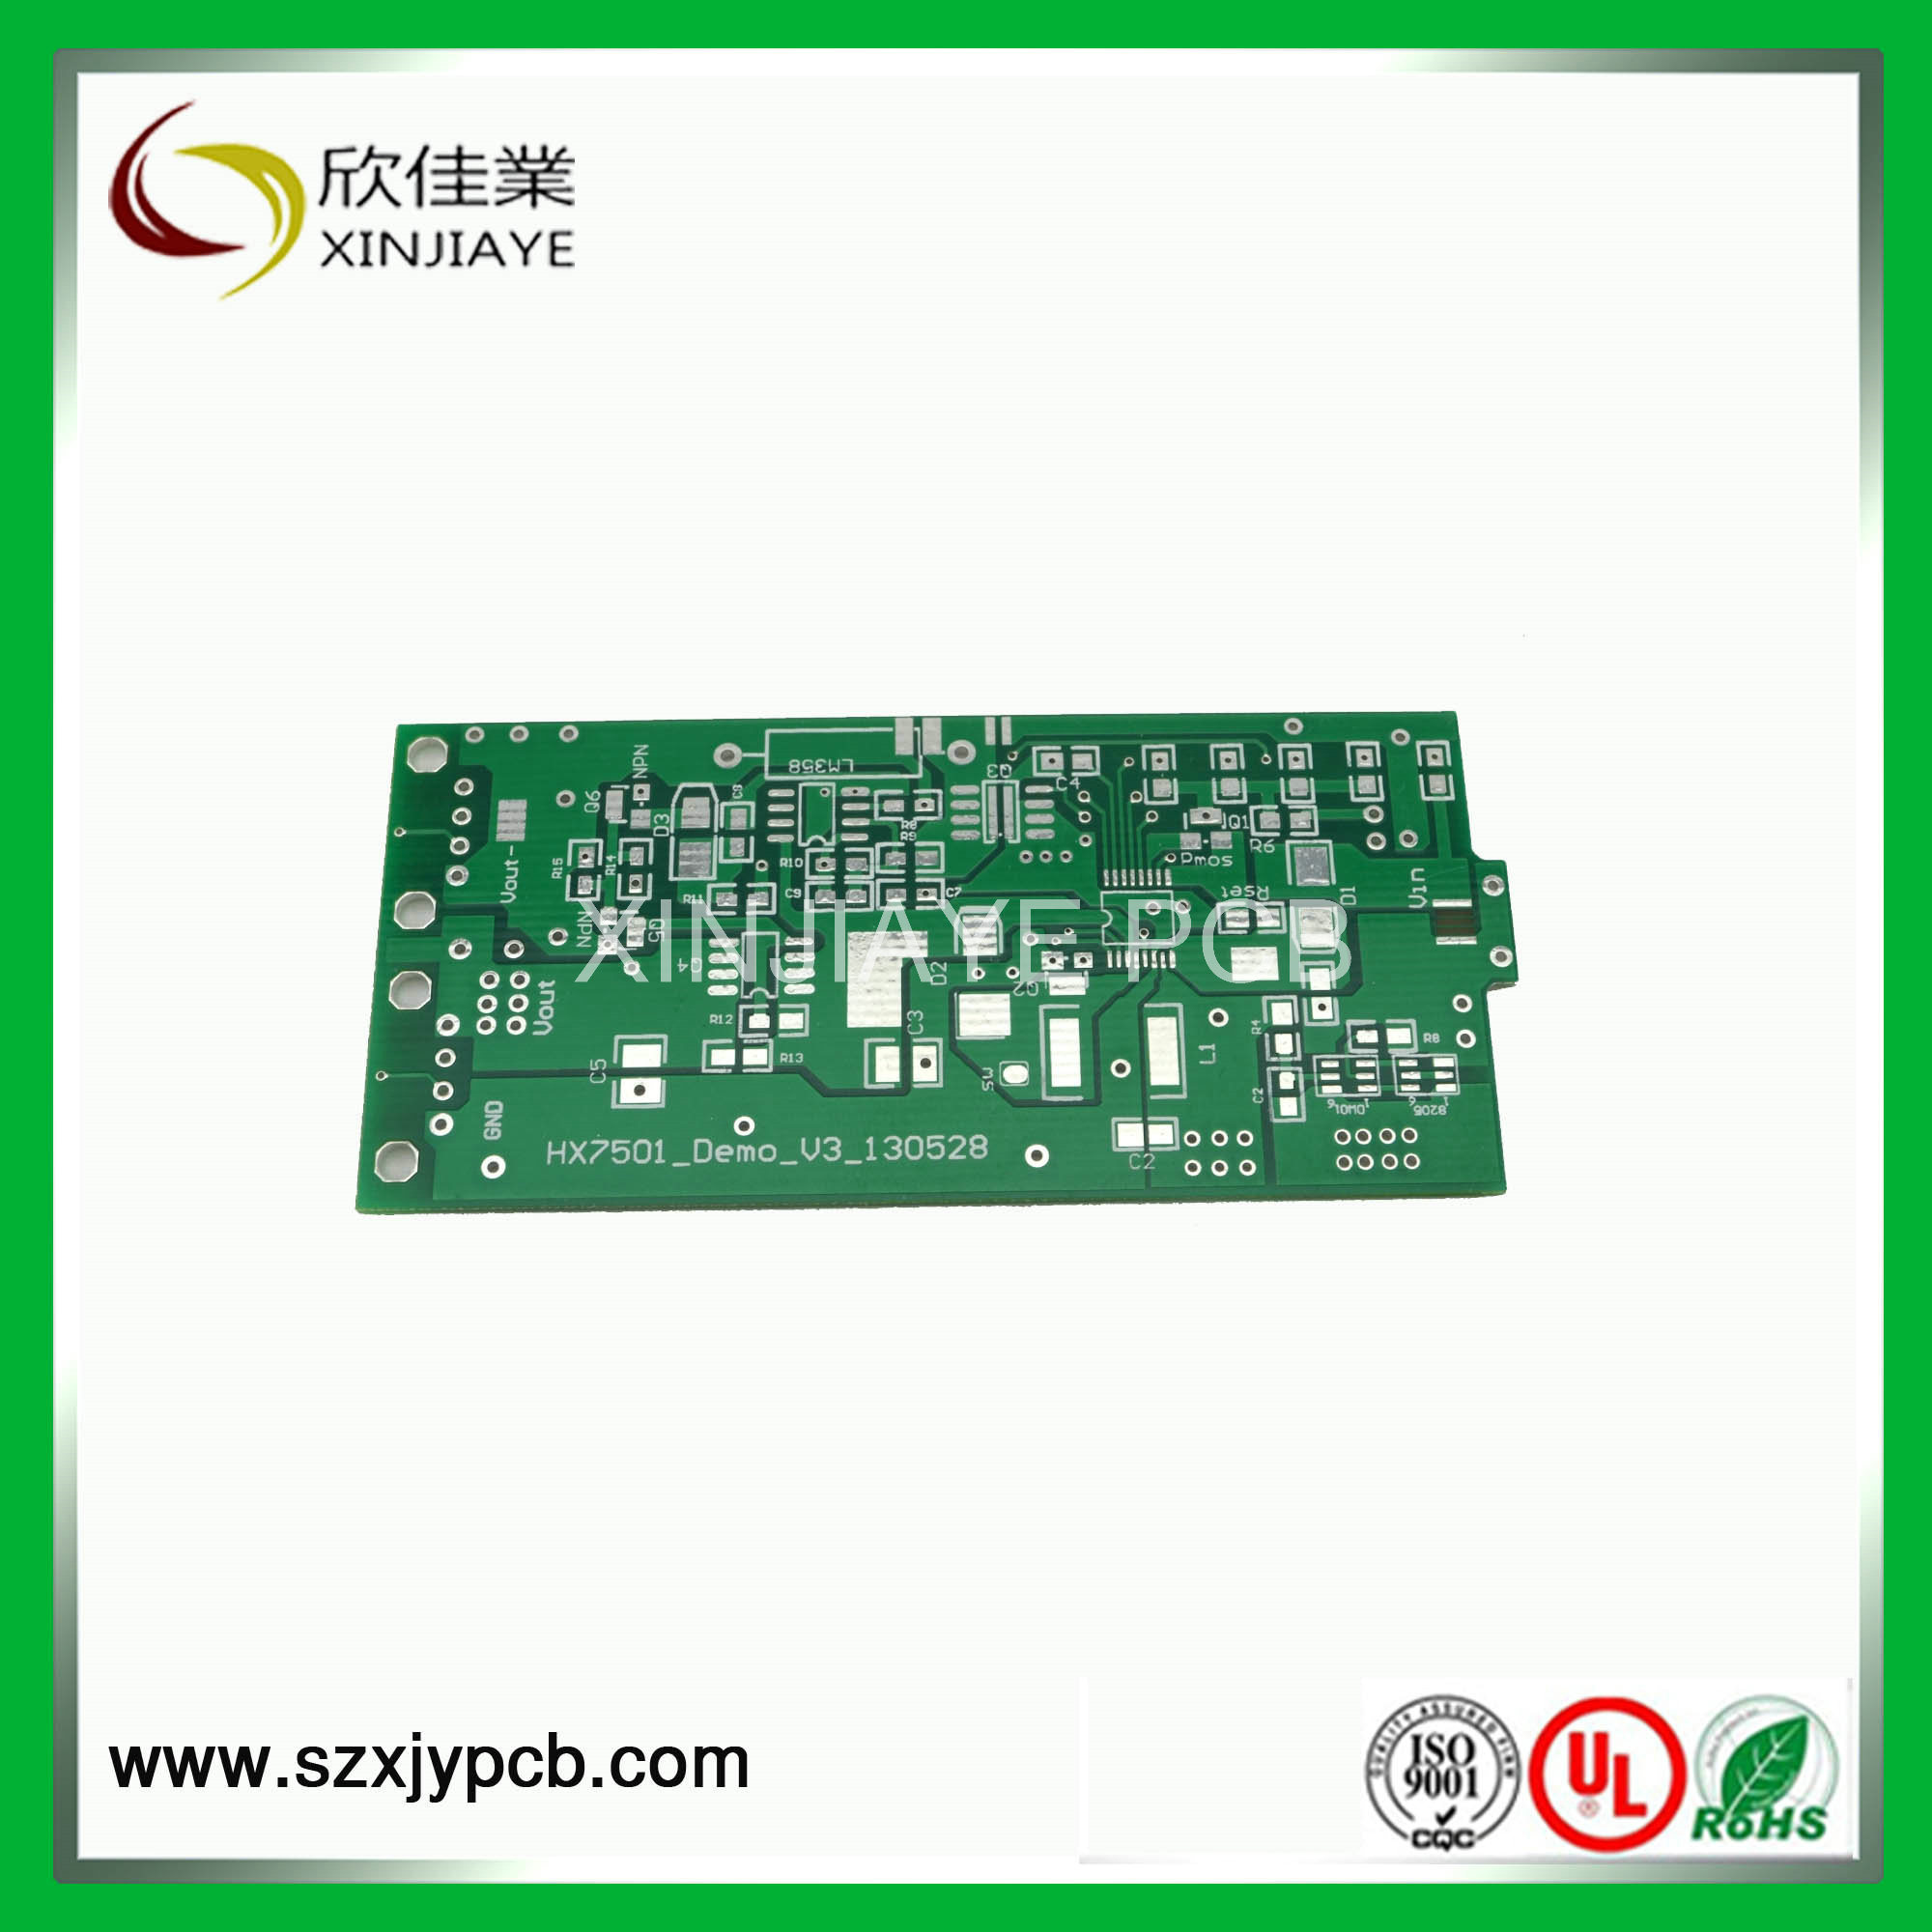 China Small Household Electrical Appliances Pcb Printed Electronic Circuits Circuit Board With Cheap Price